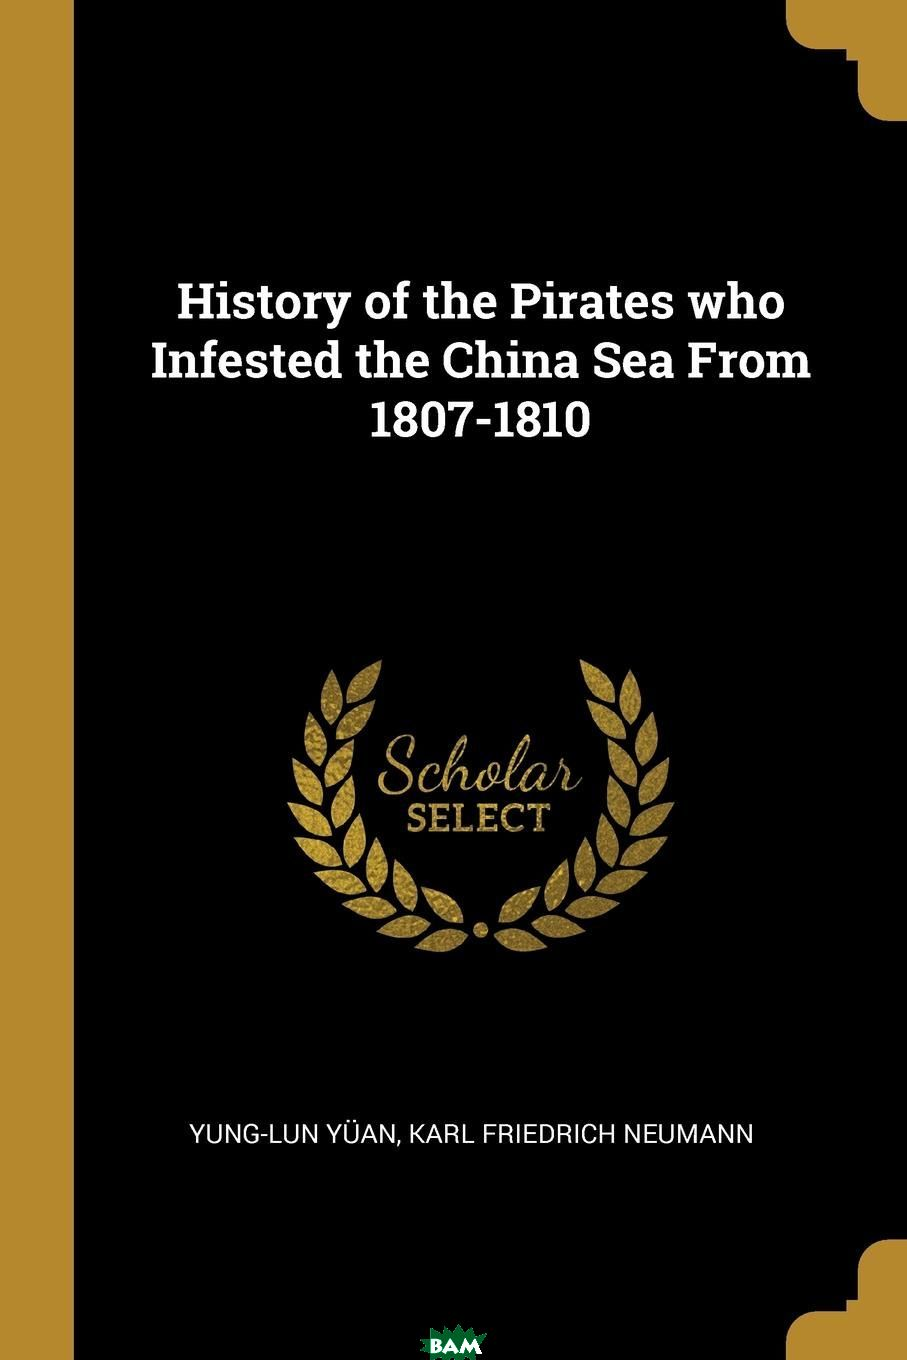 Купить History of the Pirates who Infested the China Sea From 1807-1810, Karl Friedrich Neumann Yung-lun Yuan, 9780353950146